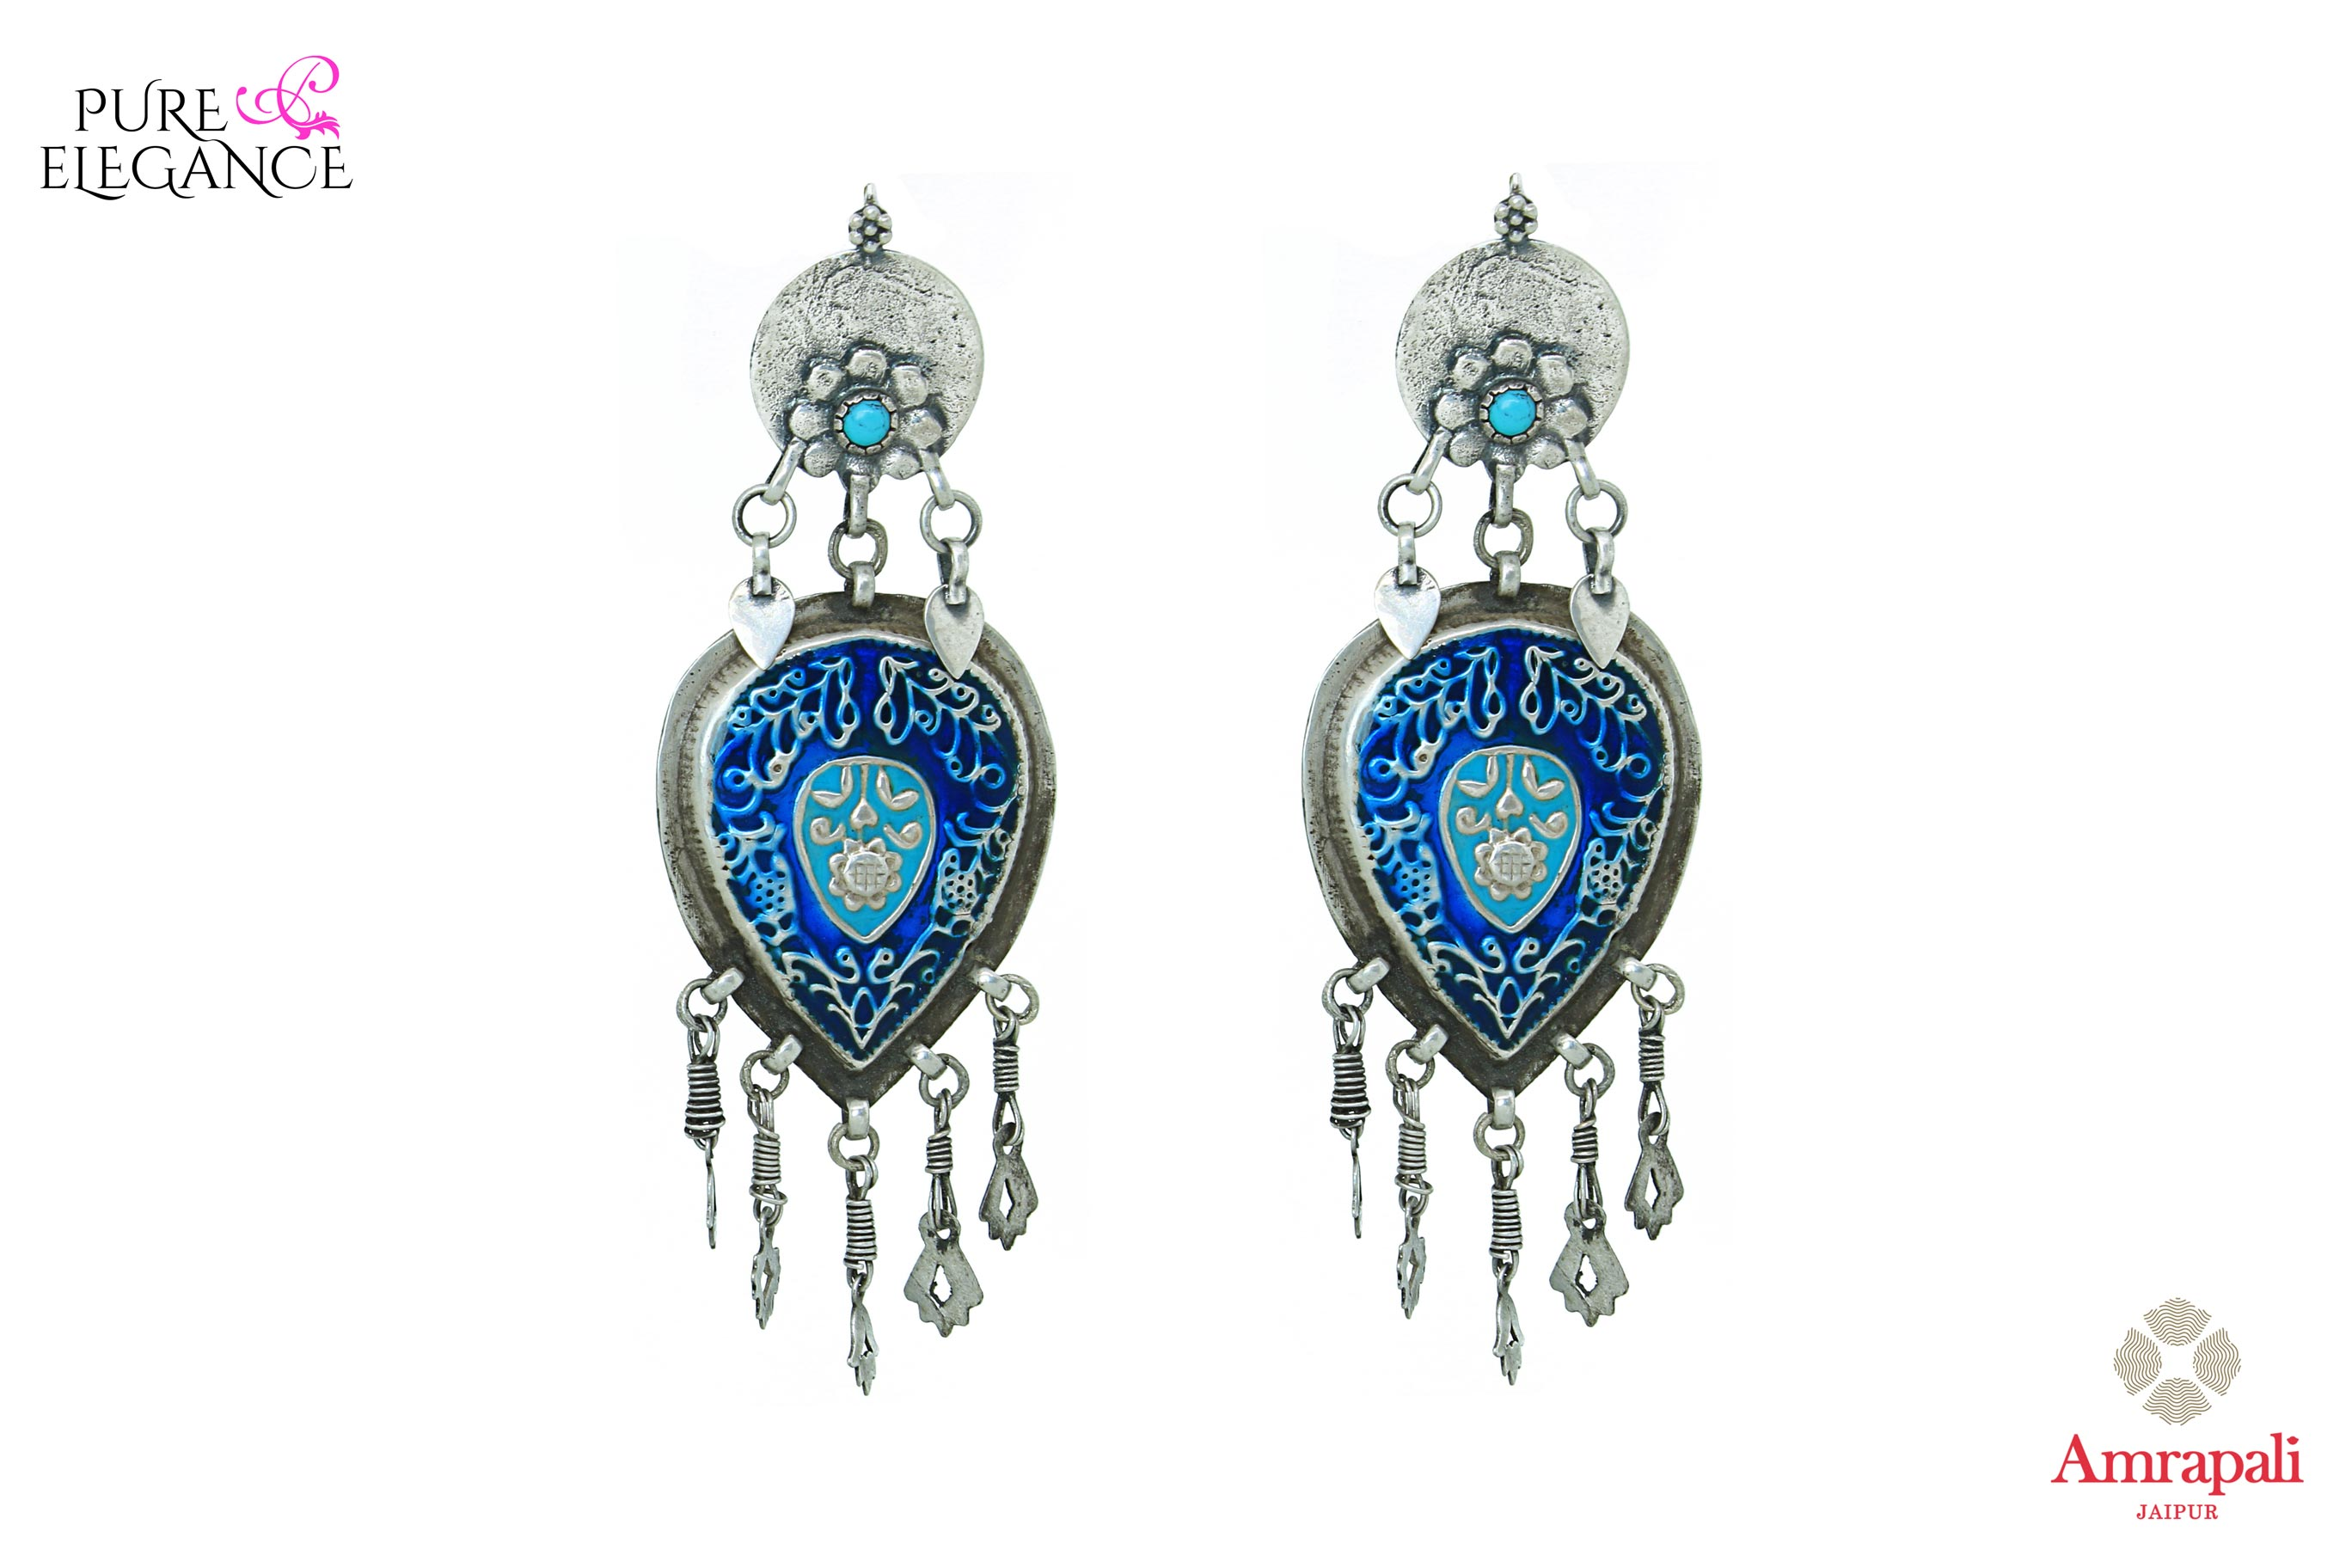 Buy Amrapali silver handcrafted enamel earrings online in USA. Find an exquisite collection of handcrafted Indian jewelry in USA at Pure Elegance Indian fashion store. Complete your festive look with beautiful silver gold plated necklaces, silver gold plated earrings, silver jewelry from our online store.-front